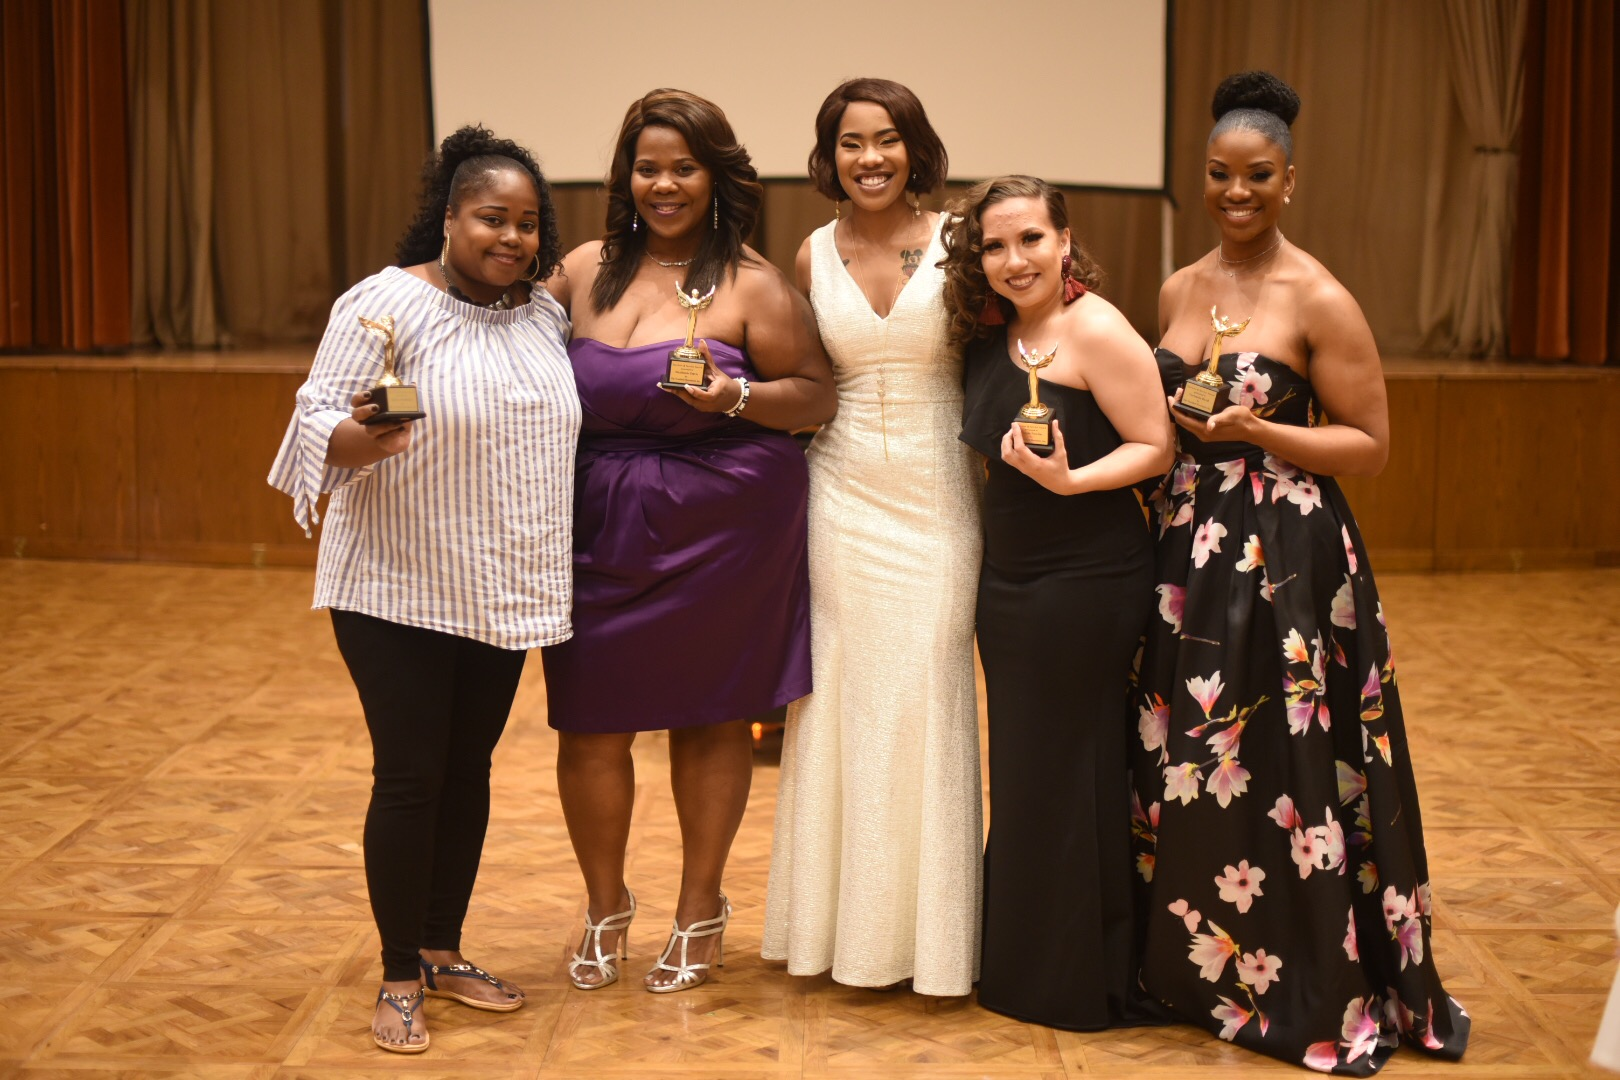 - Survivor Award Ceremony at The Troubled Movement's Second Annual Gala - April 21, 2018